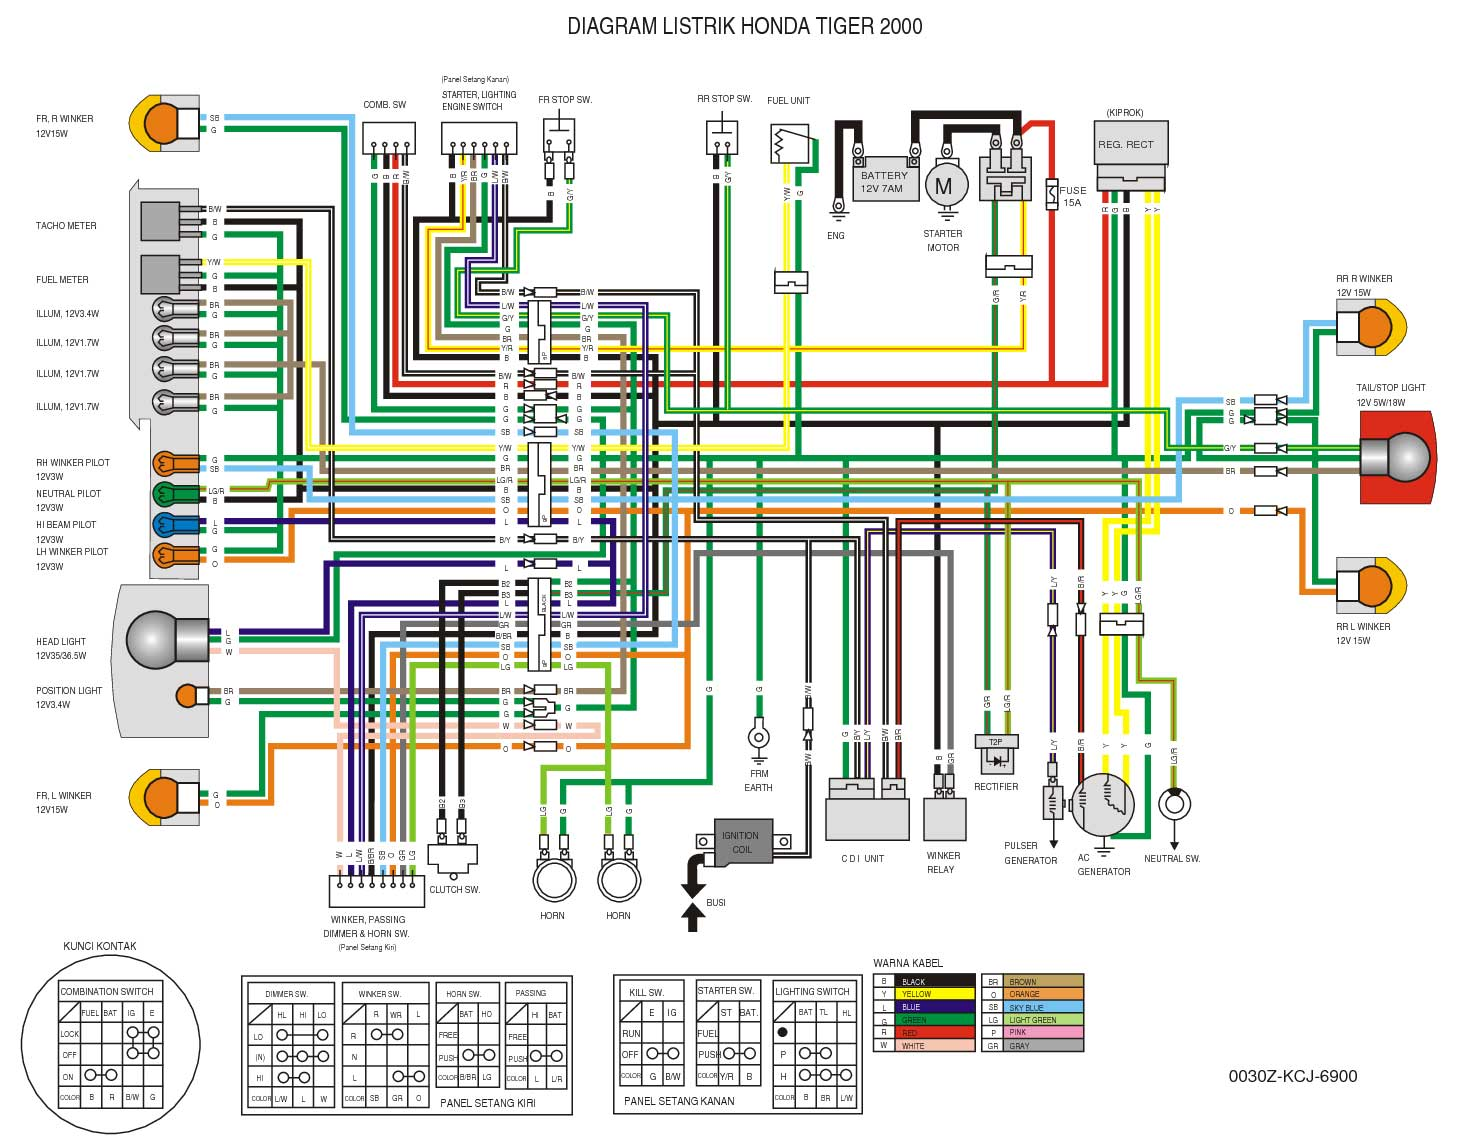 Wiring Diagram Motor Honda Supra Free For You 50cc Scooter Engine Diagrams Kelistrikan Tiger 2000